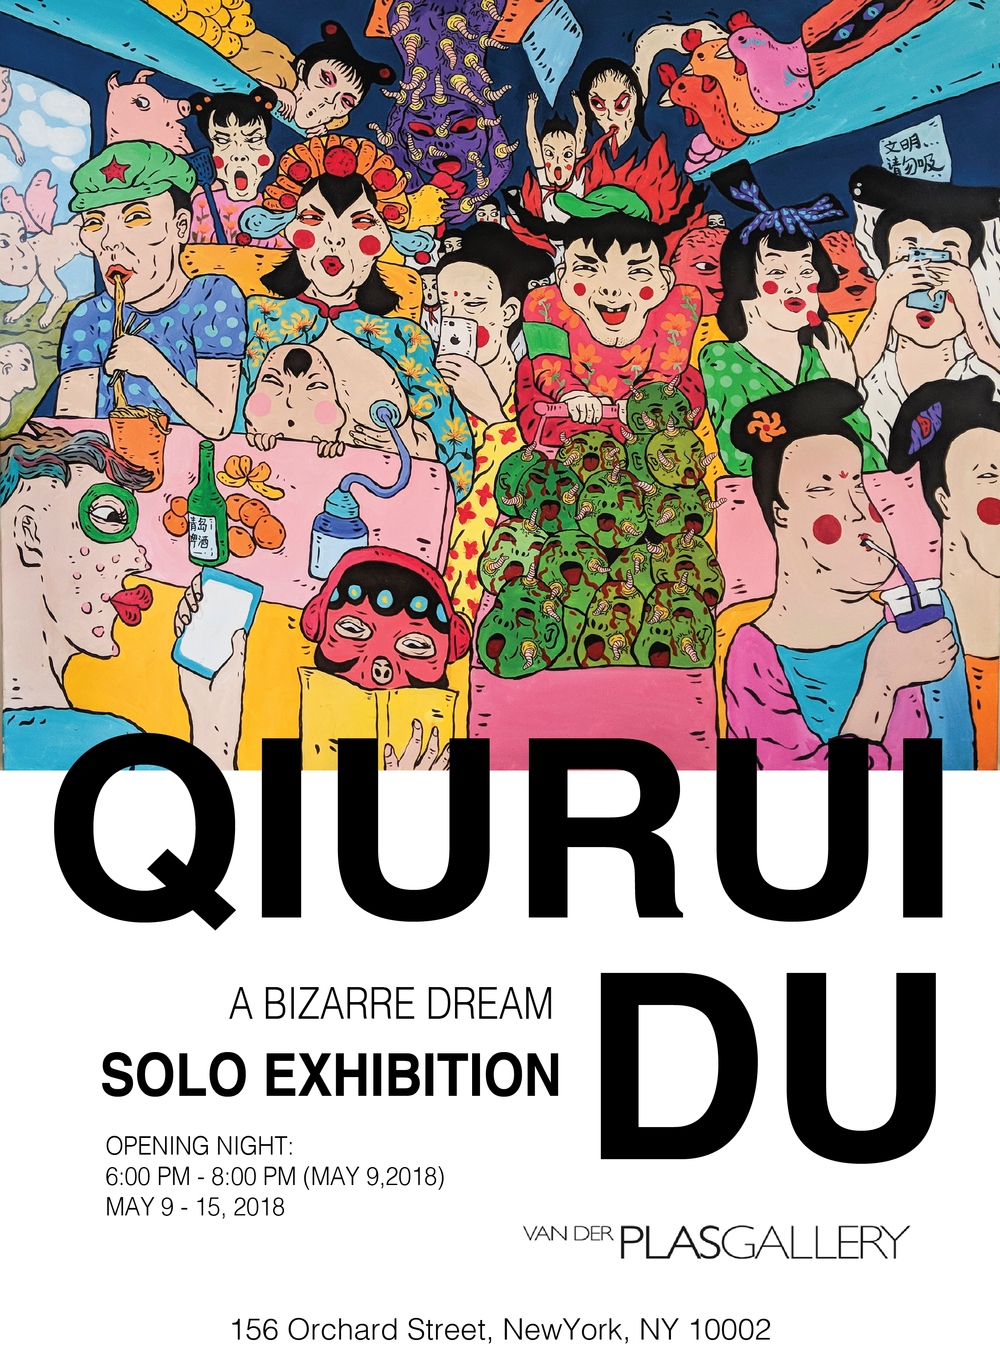 A Bizarre World - Van Der Plas Gallery is pleased to announce an art exhibition by the emerging Chinese artist Qiurui Du - A Bizarre Dream, which will be on view from May 9th - May 16th, 2018. For his first exhibition in NYC, Qiurui will present the latest series of Acrylic paintings based on the theme of his childhood memories. Qiurui explored his childhood memories in China with the social conflict that was caused by China's tremendous development and deconstructed his inner fear and love.